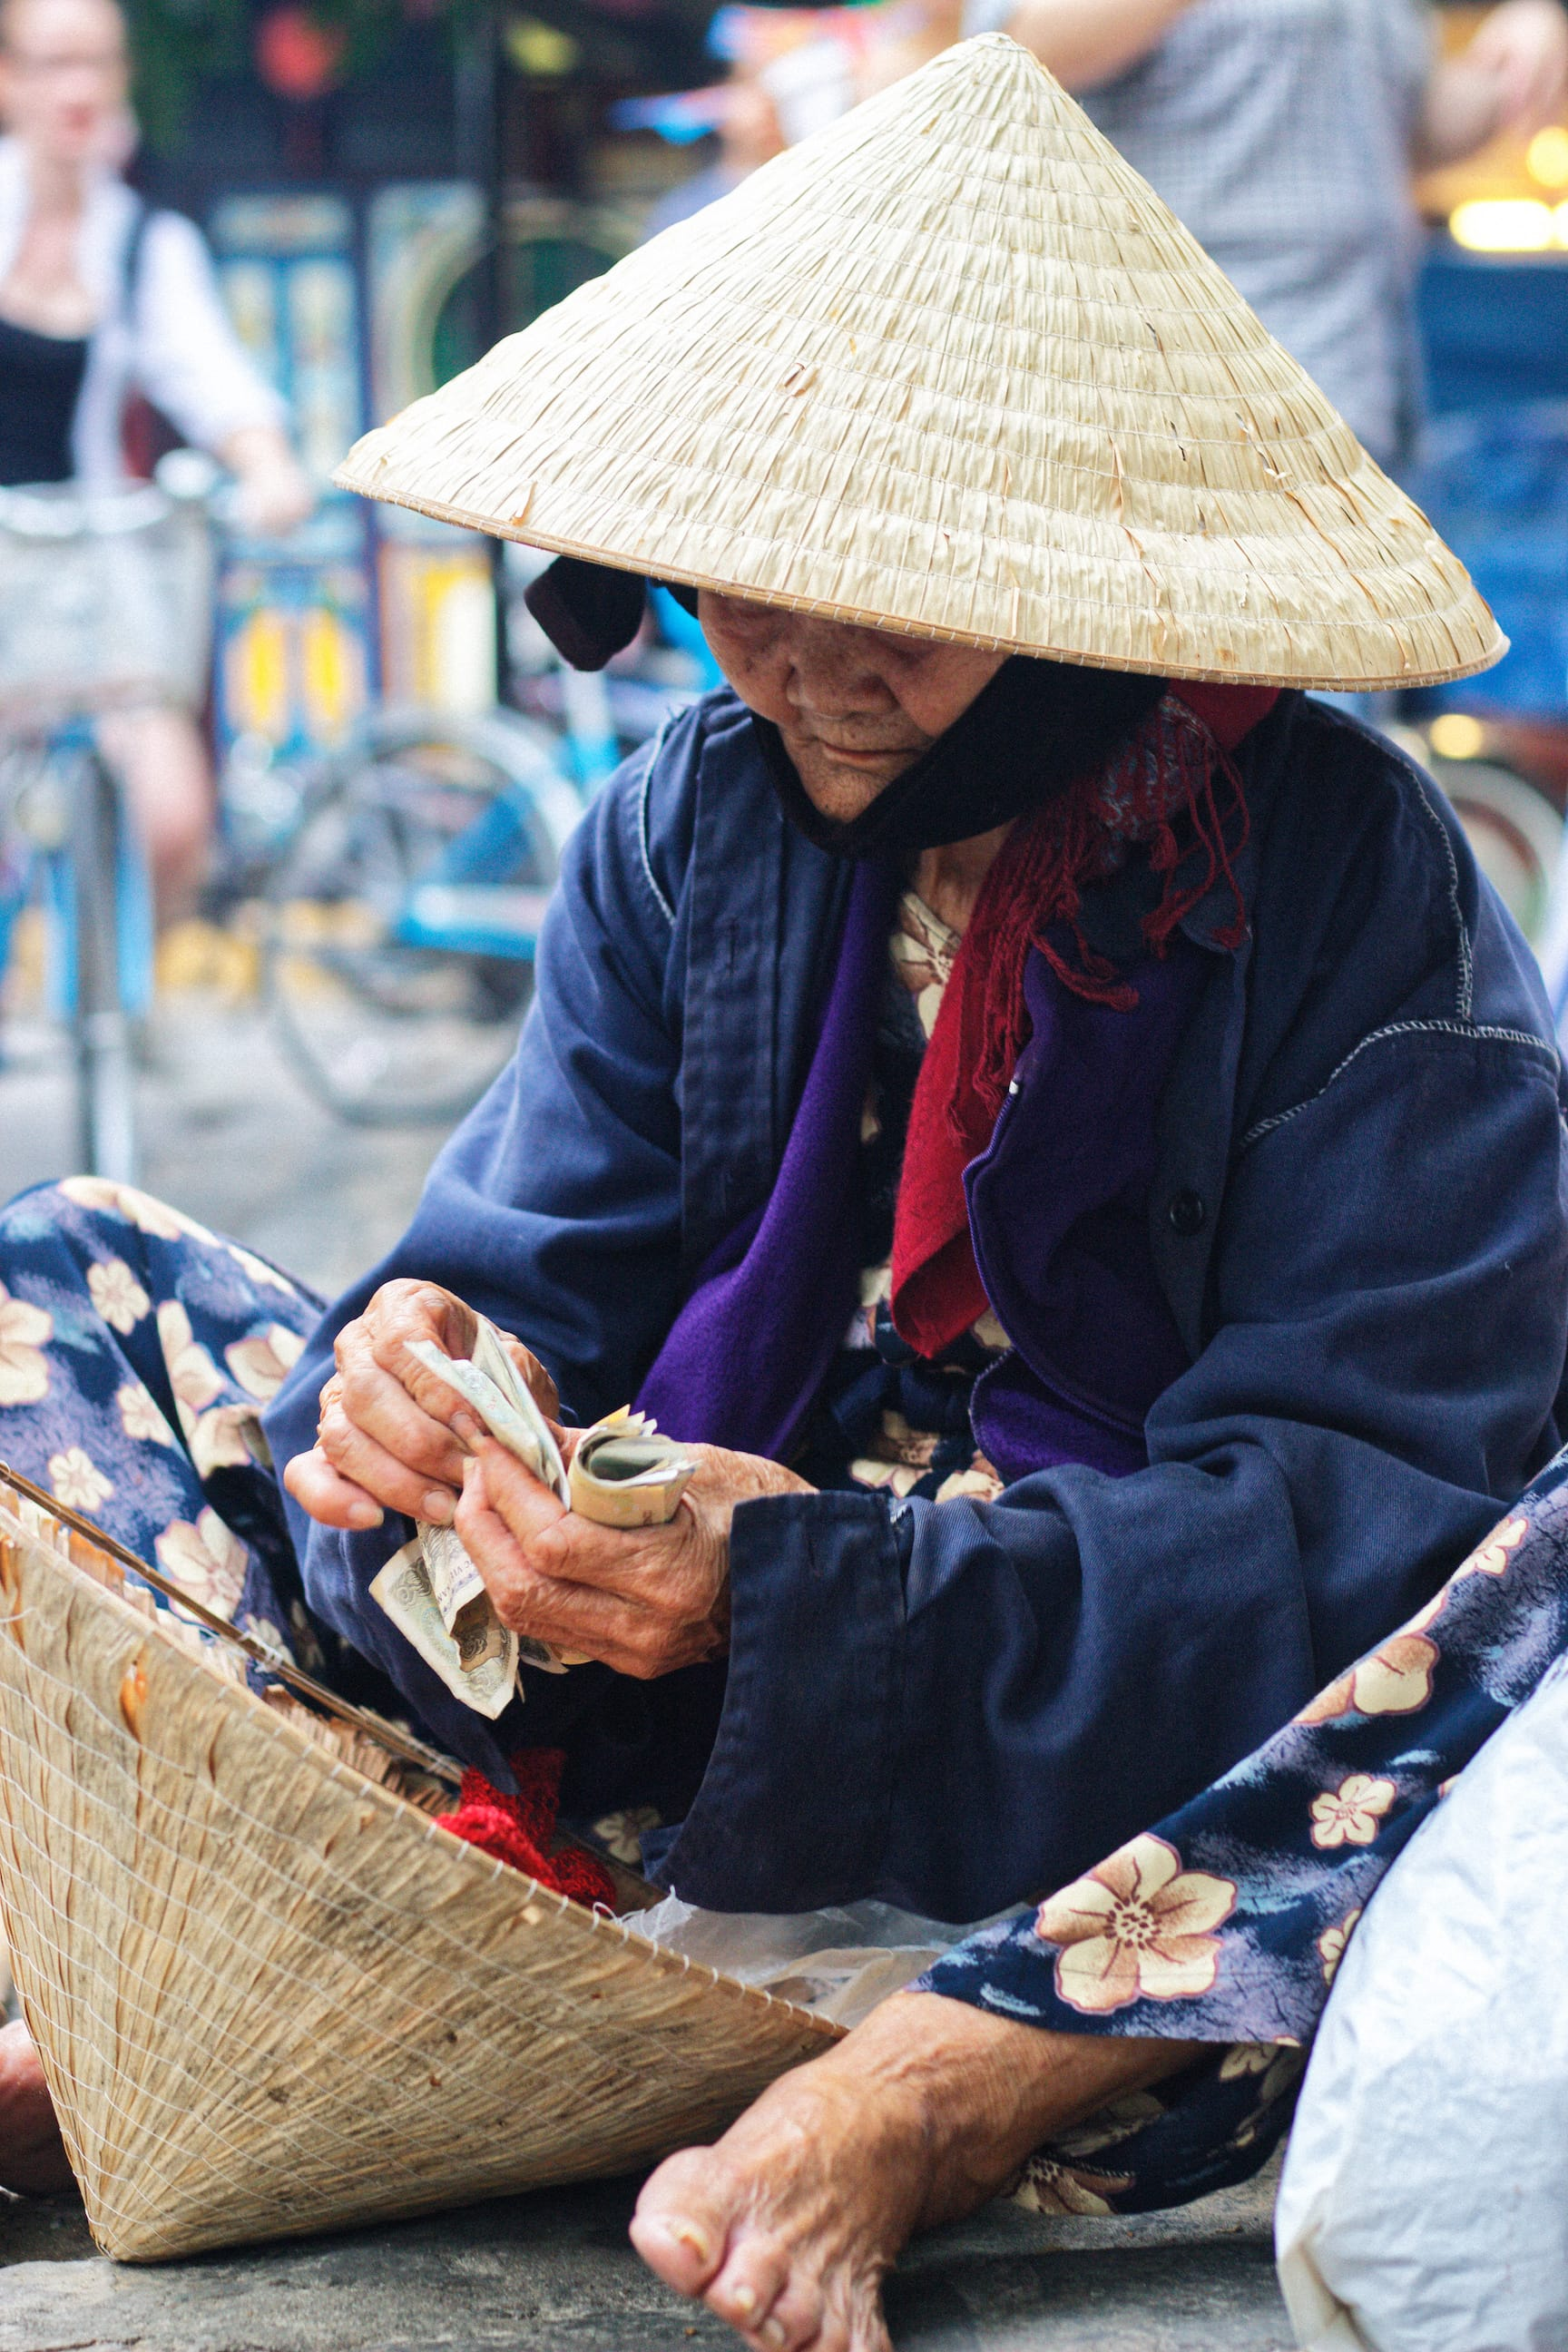 A Street Vendor in Hoi An